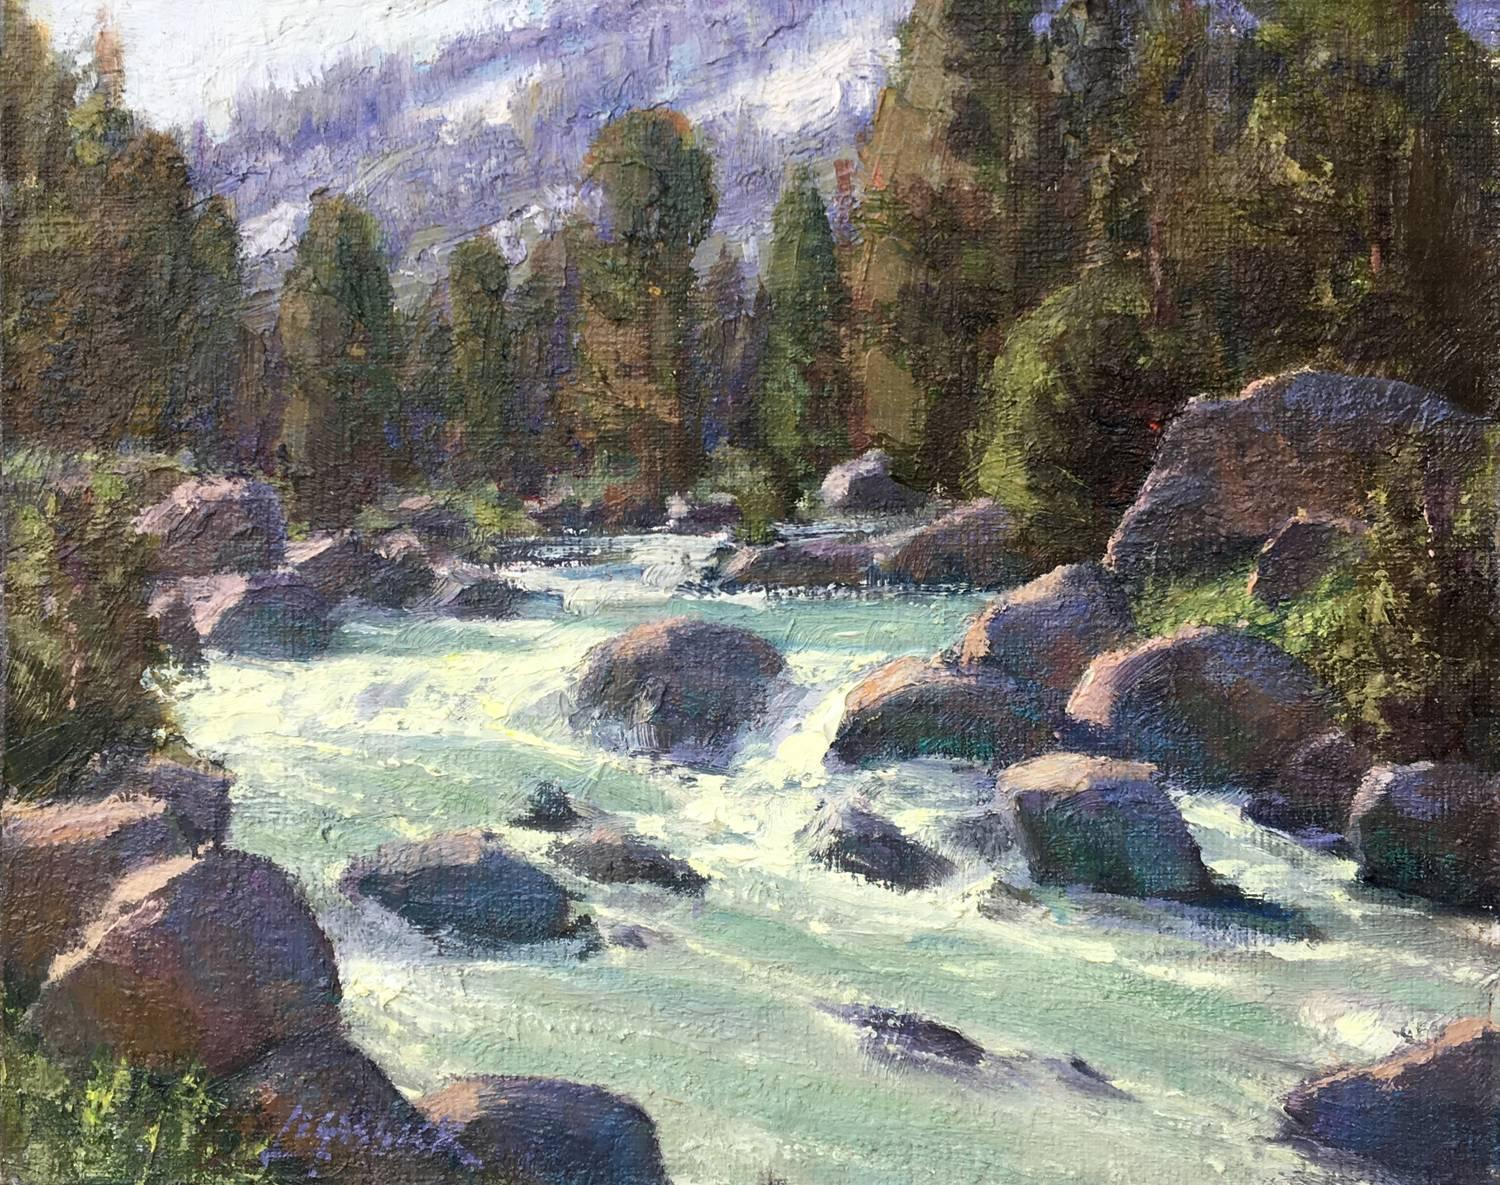 Jean LeGassick A Day In Faith Valley Painting For Sale